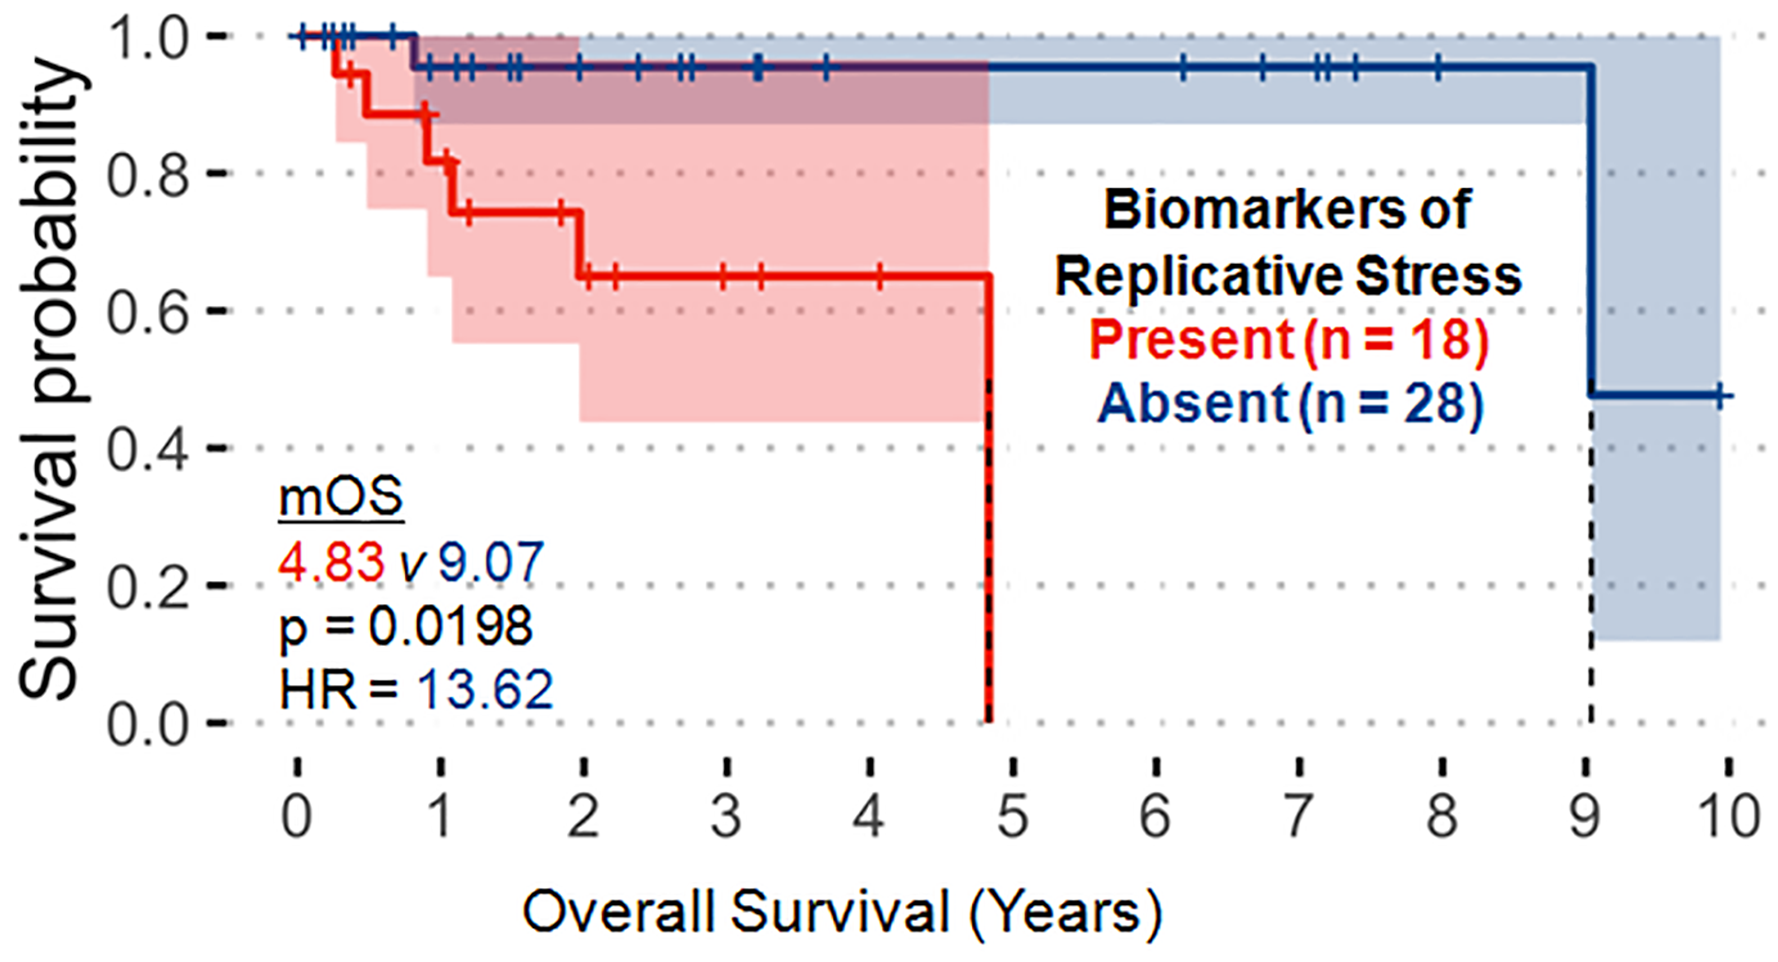 Molecular alterations associated with the replicative stress pathway (p53, RB1, ATRX, ATM, CCNE1, CHEK2, MYC) significantly correlate with decreased overall survival.